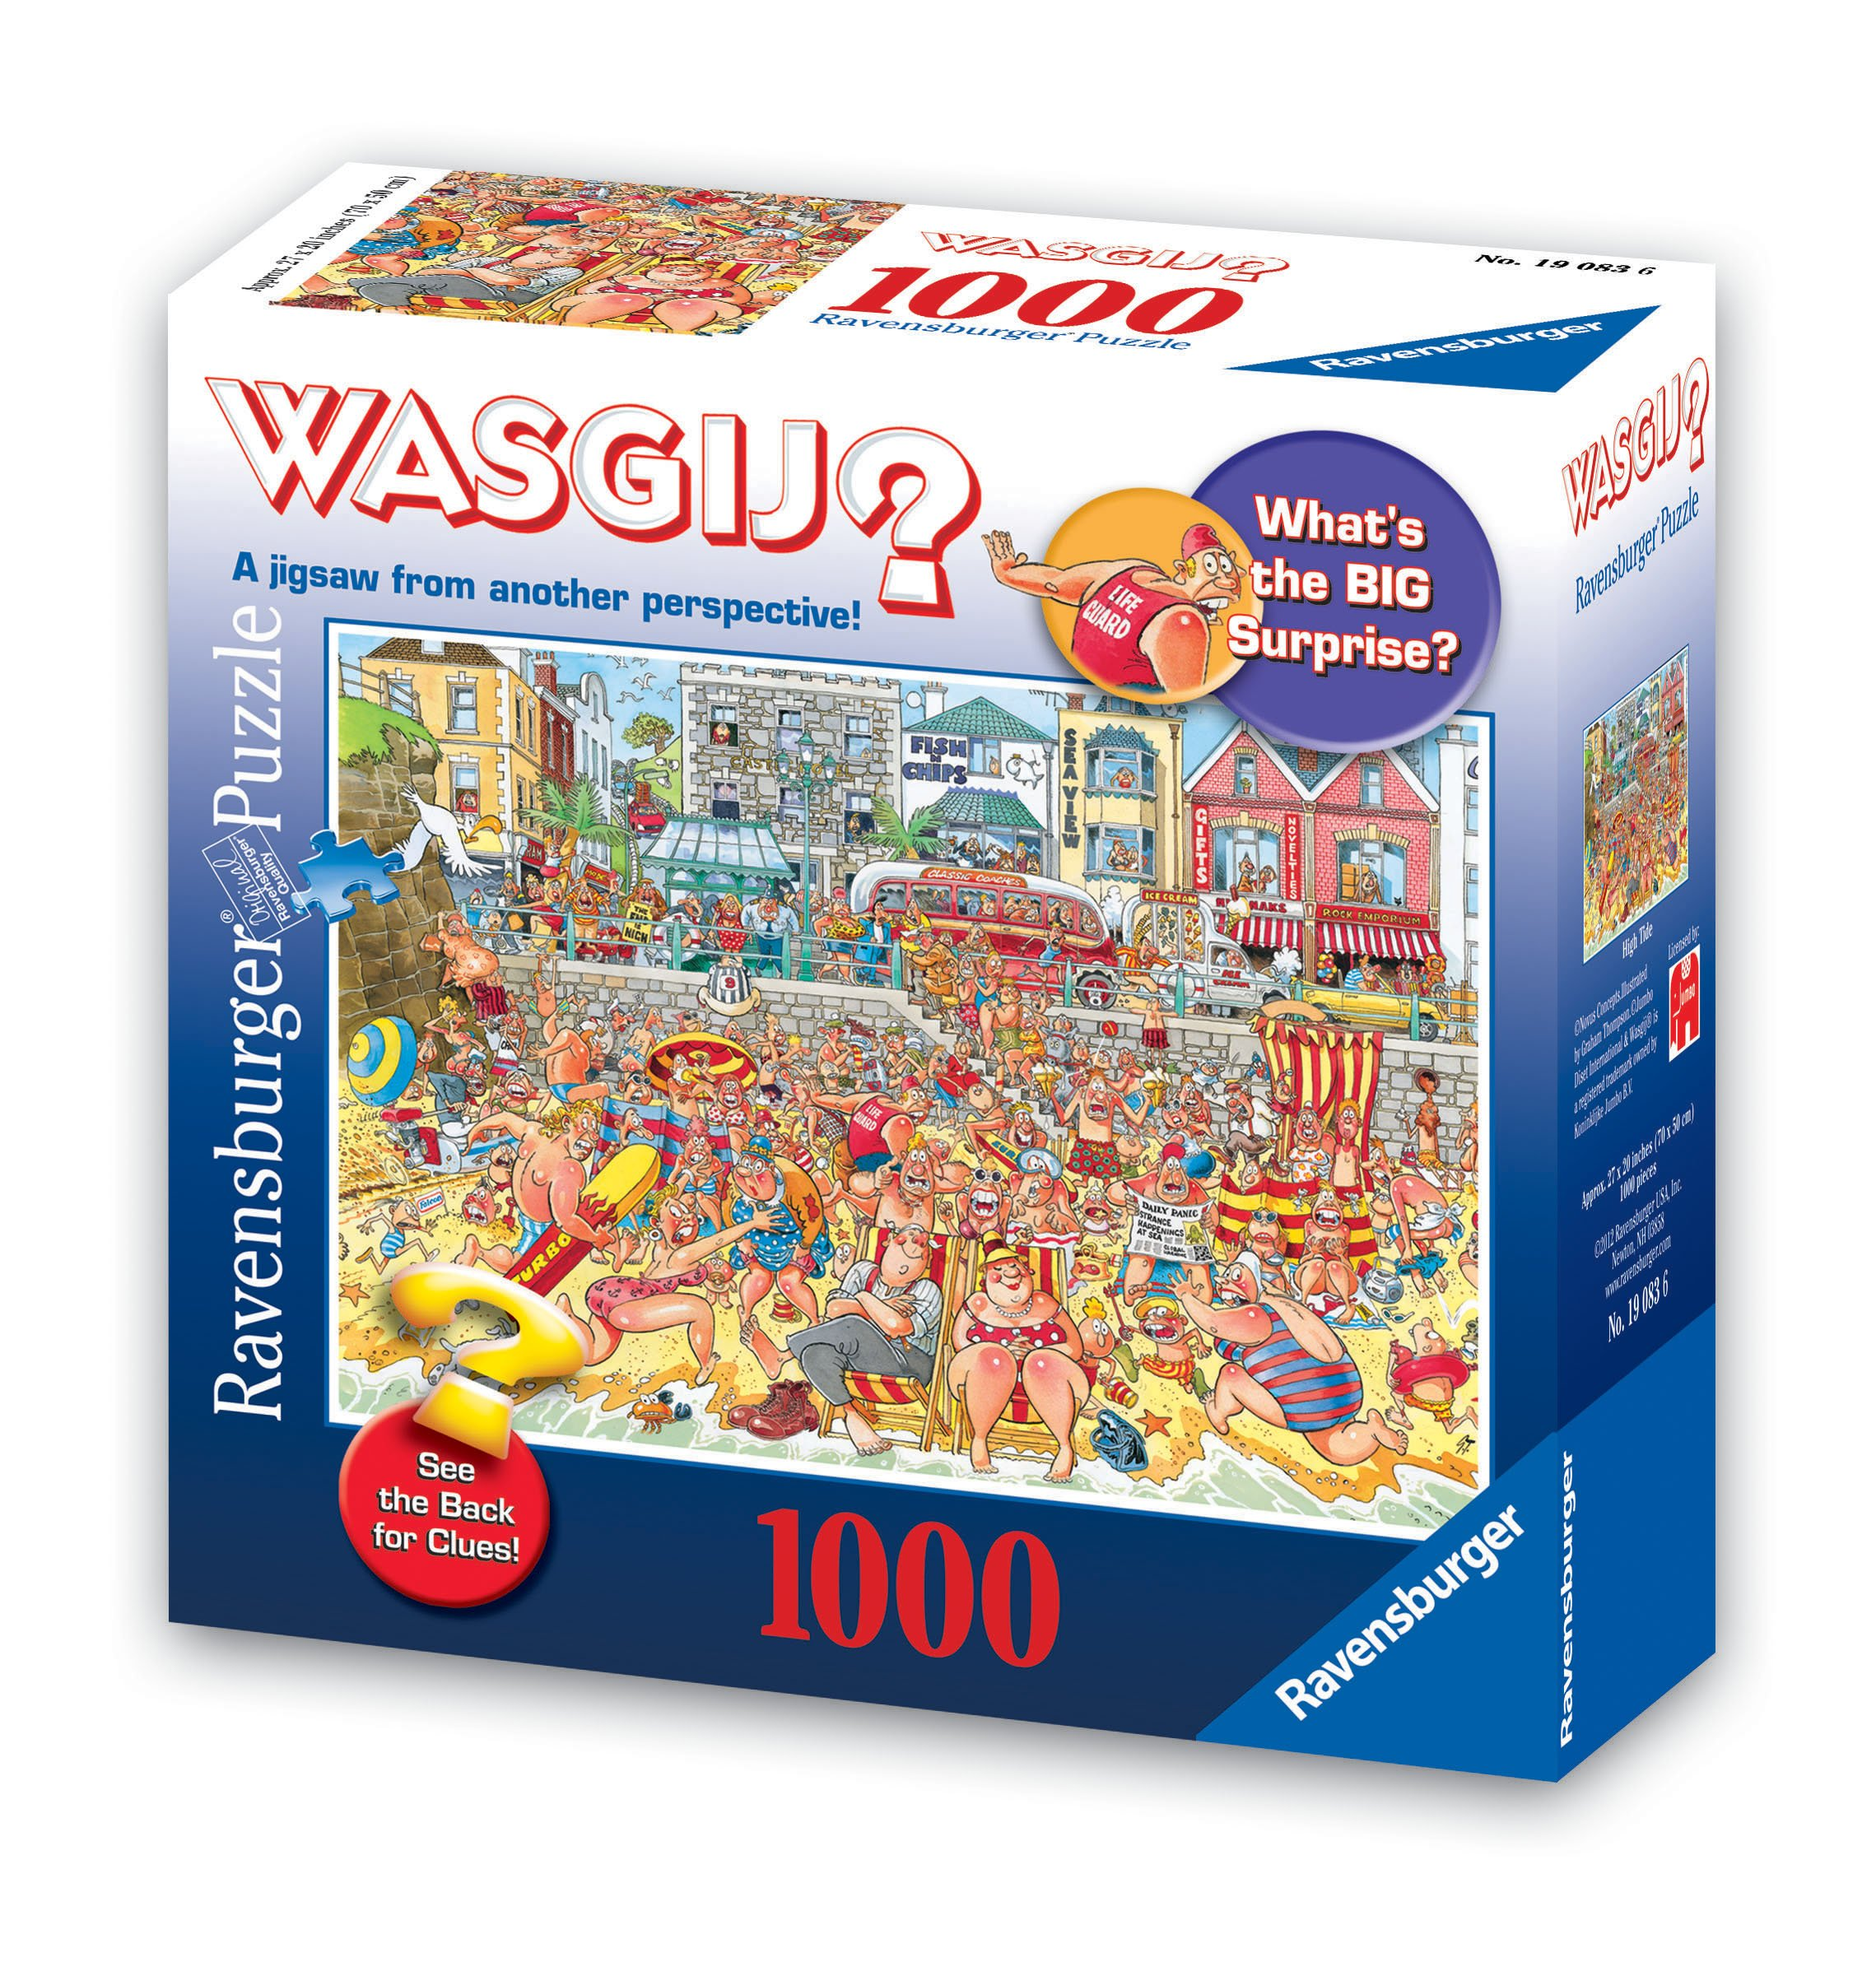 Wasgij Original: High Tide 1000 Piece Puzzle